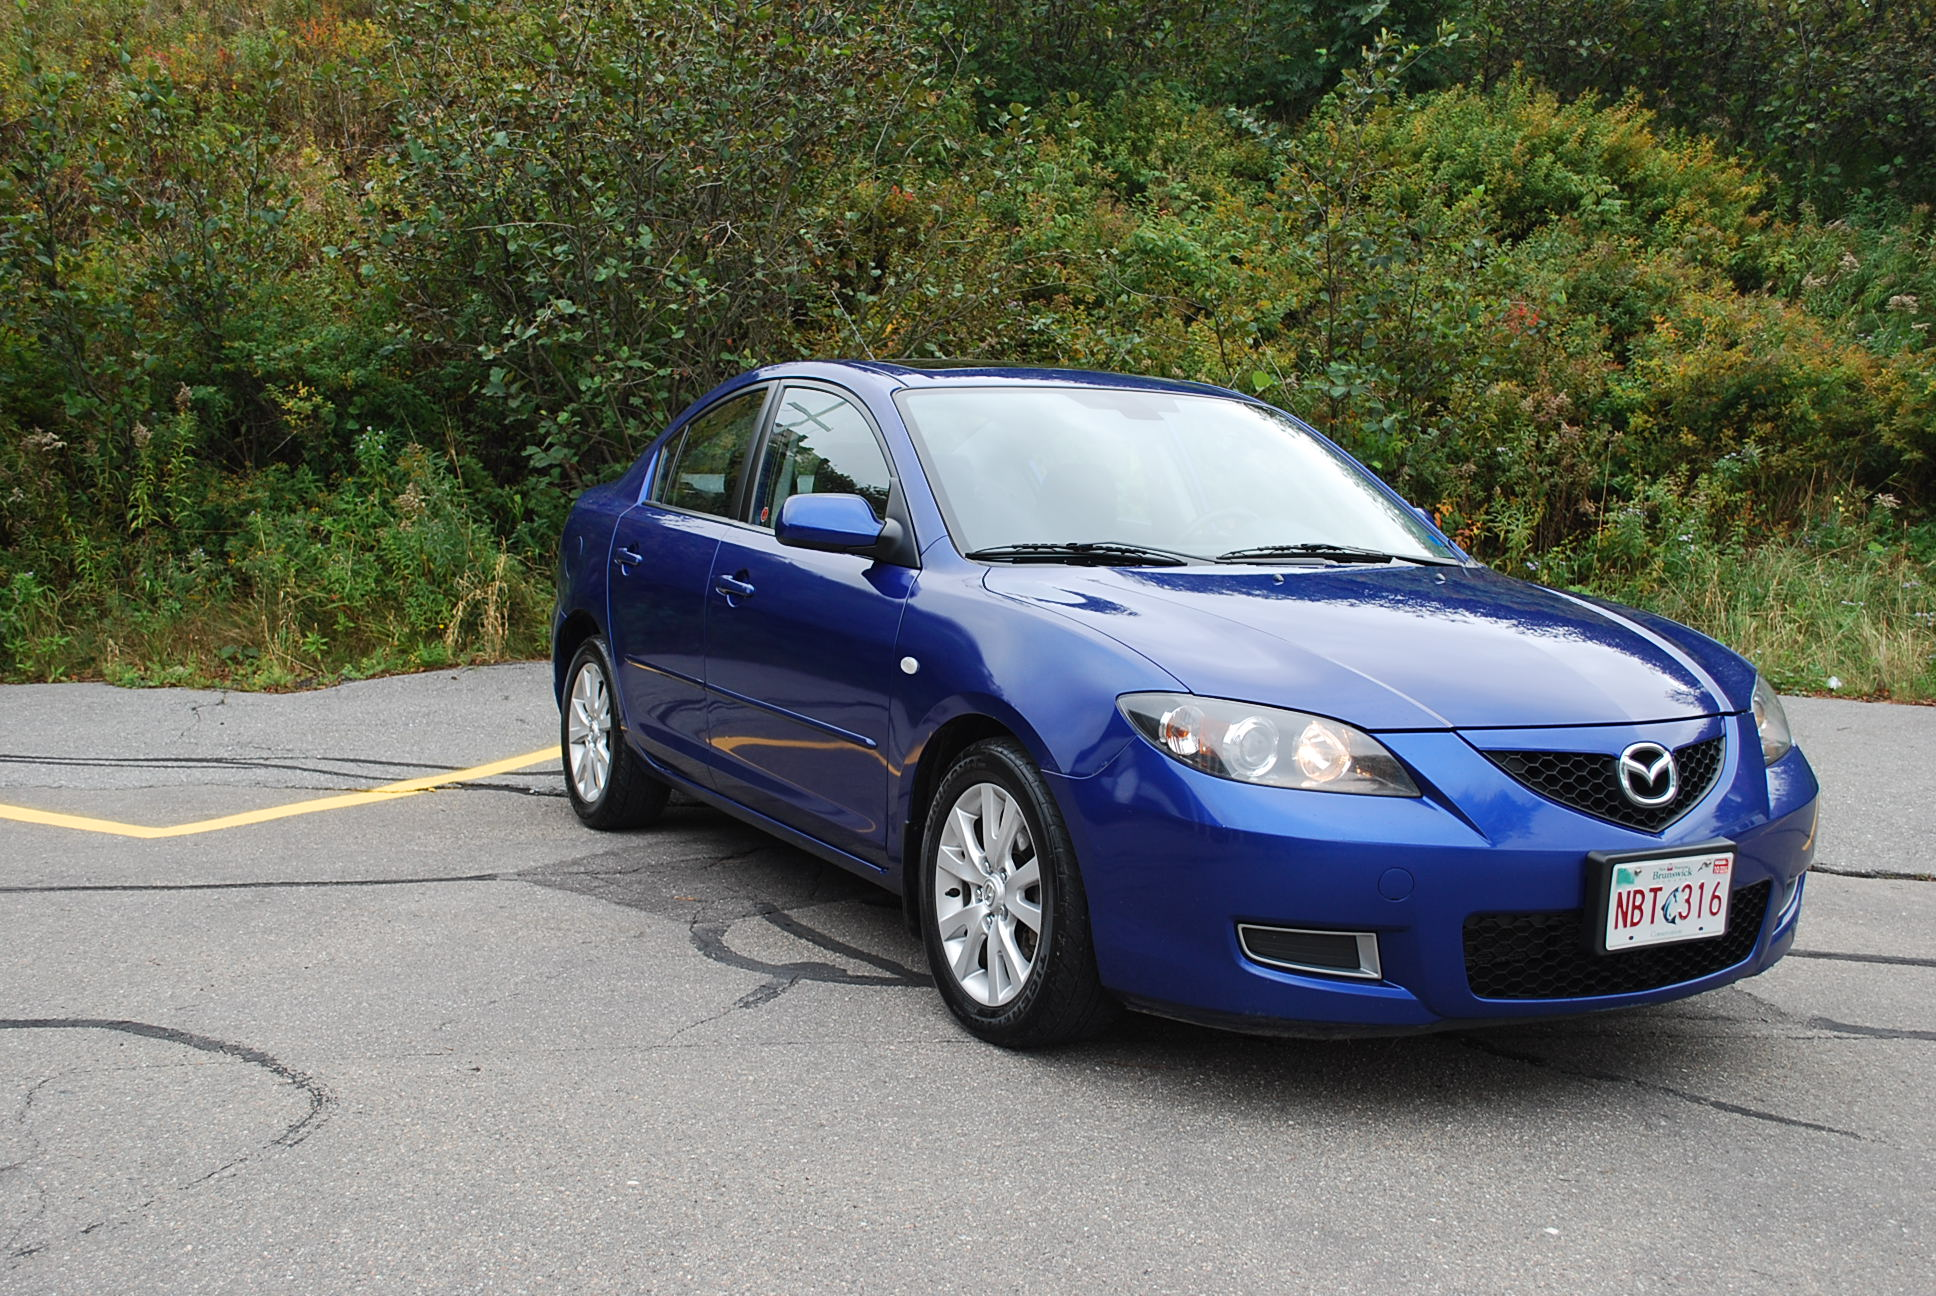 Used 2009 Mazda 3 Gs Sedan For Sale In Saint John Nb